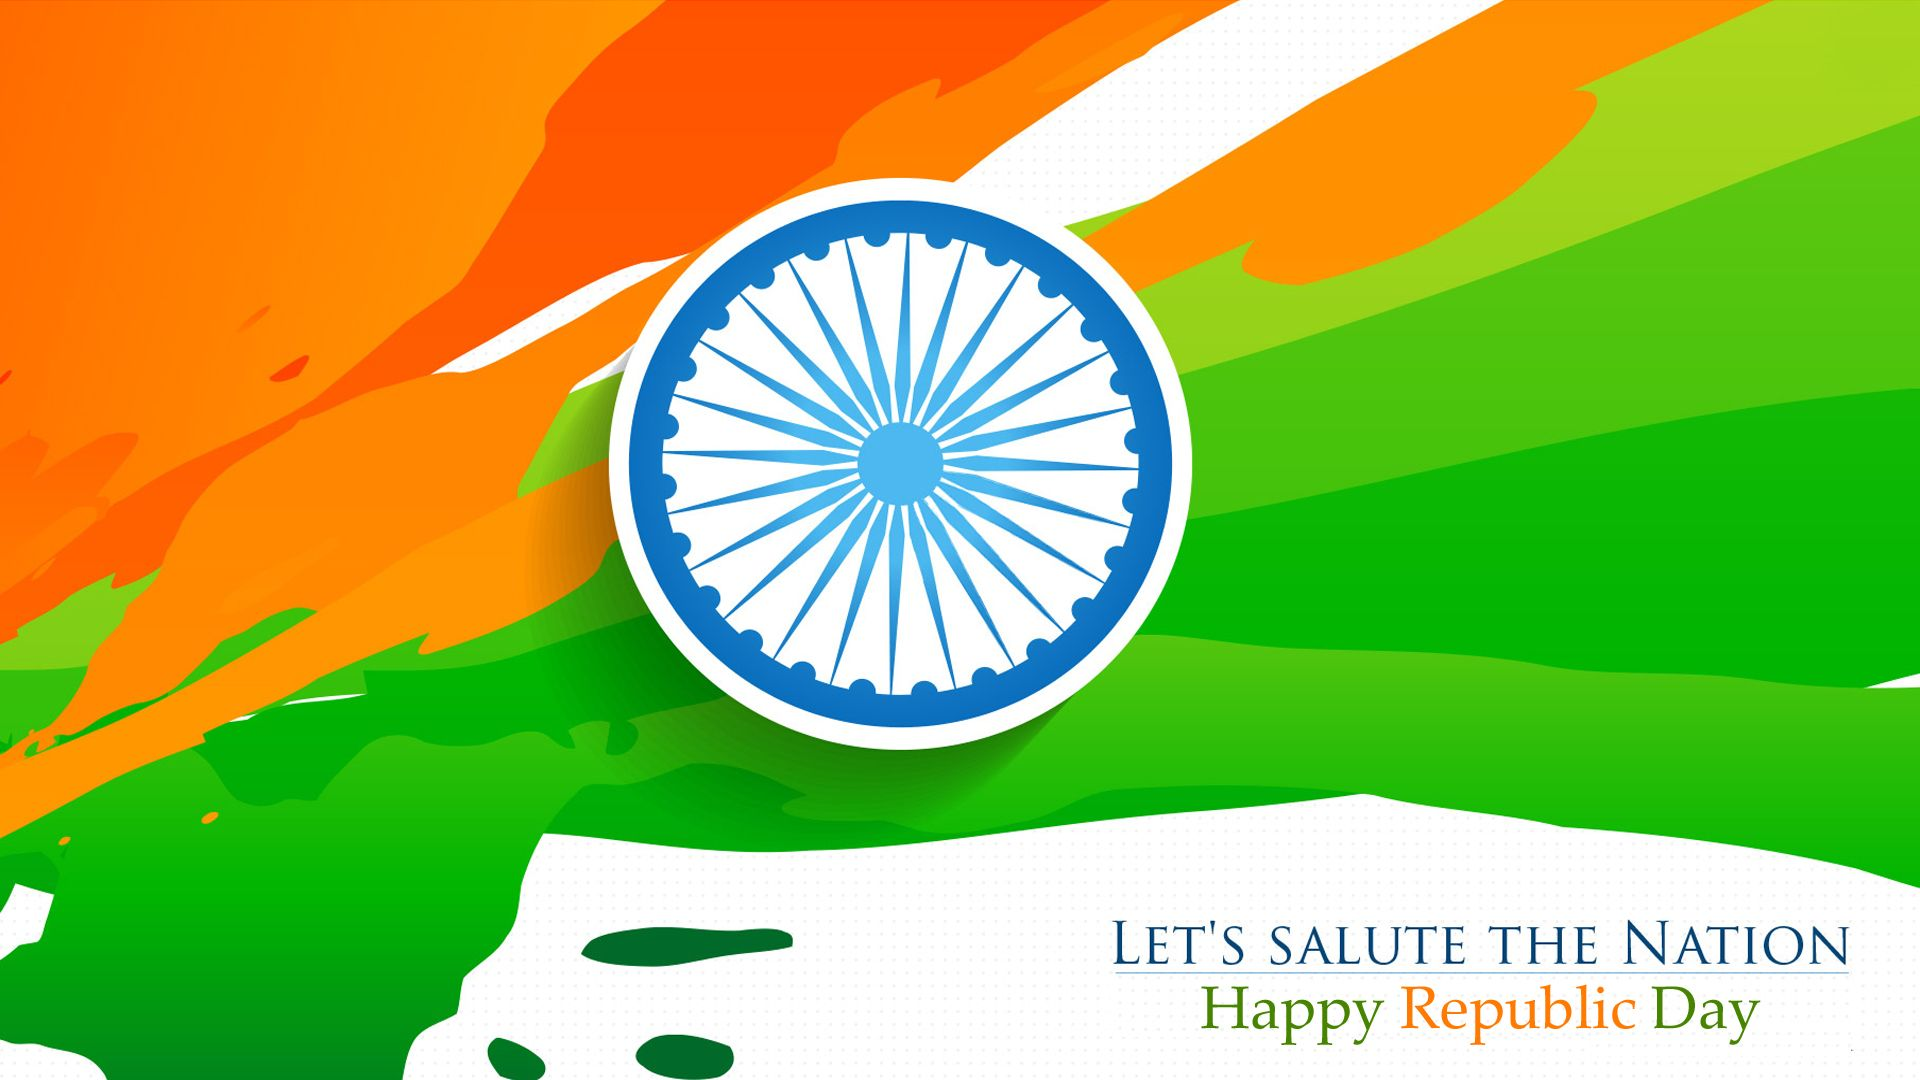 Pin By Researchbhaskar On Republic Day Republic Day Independence